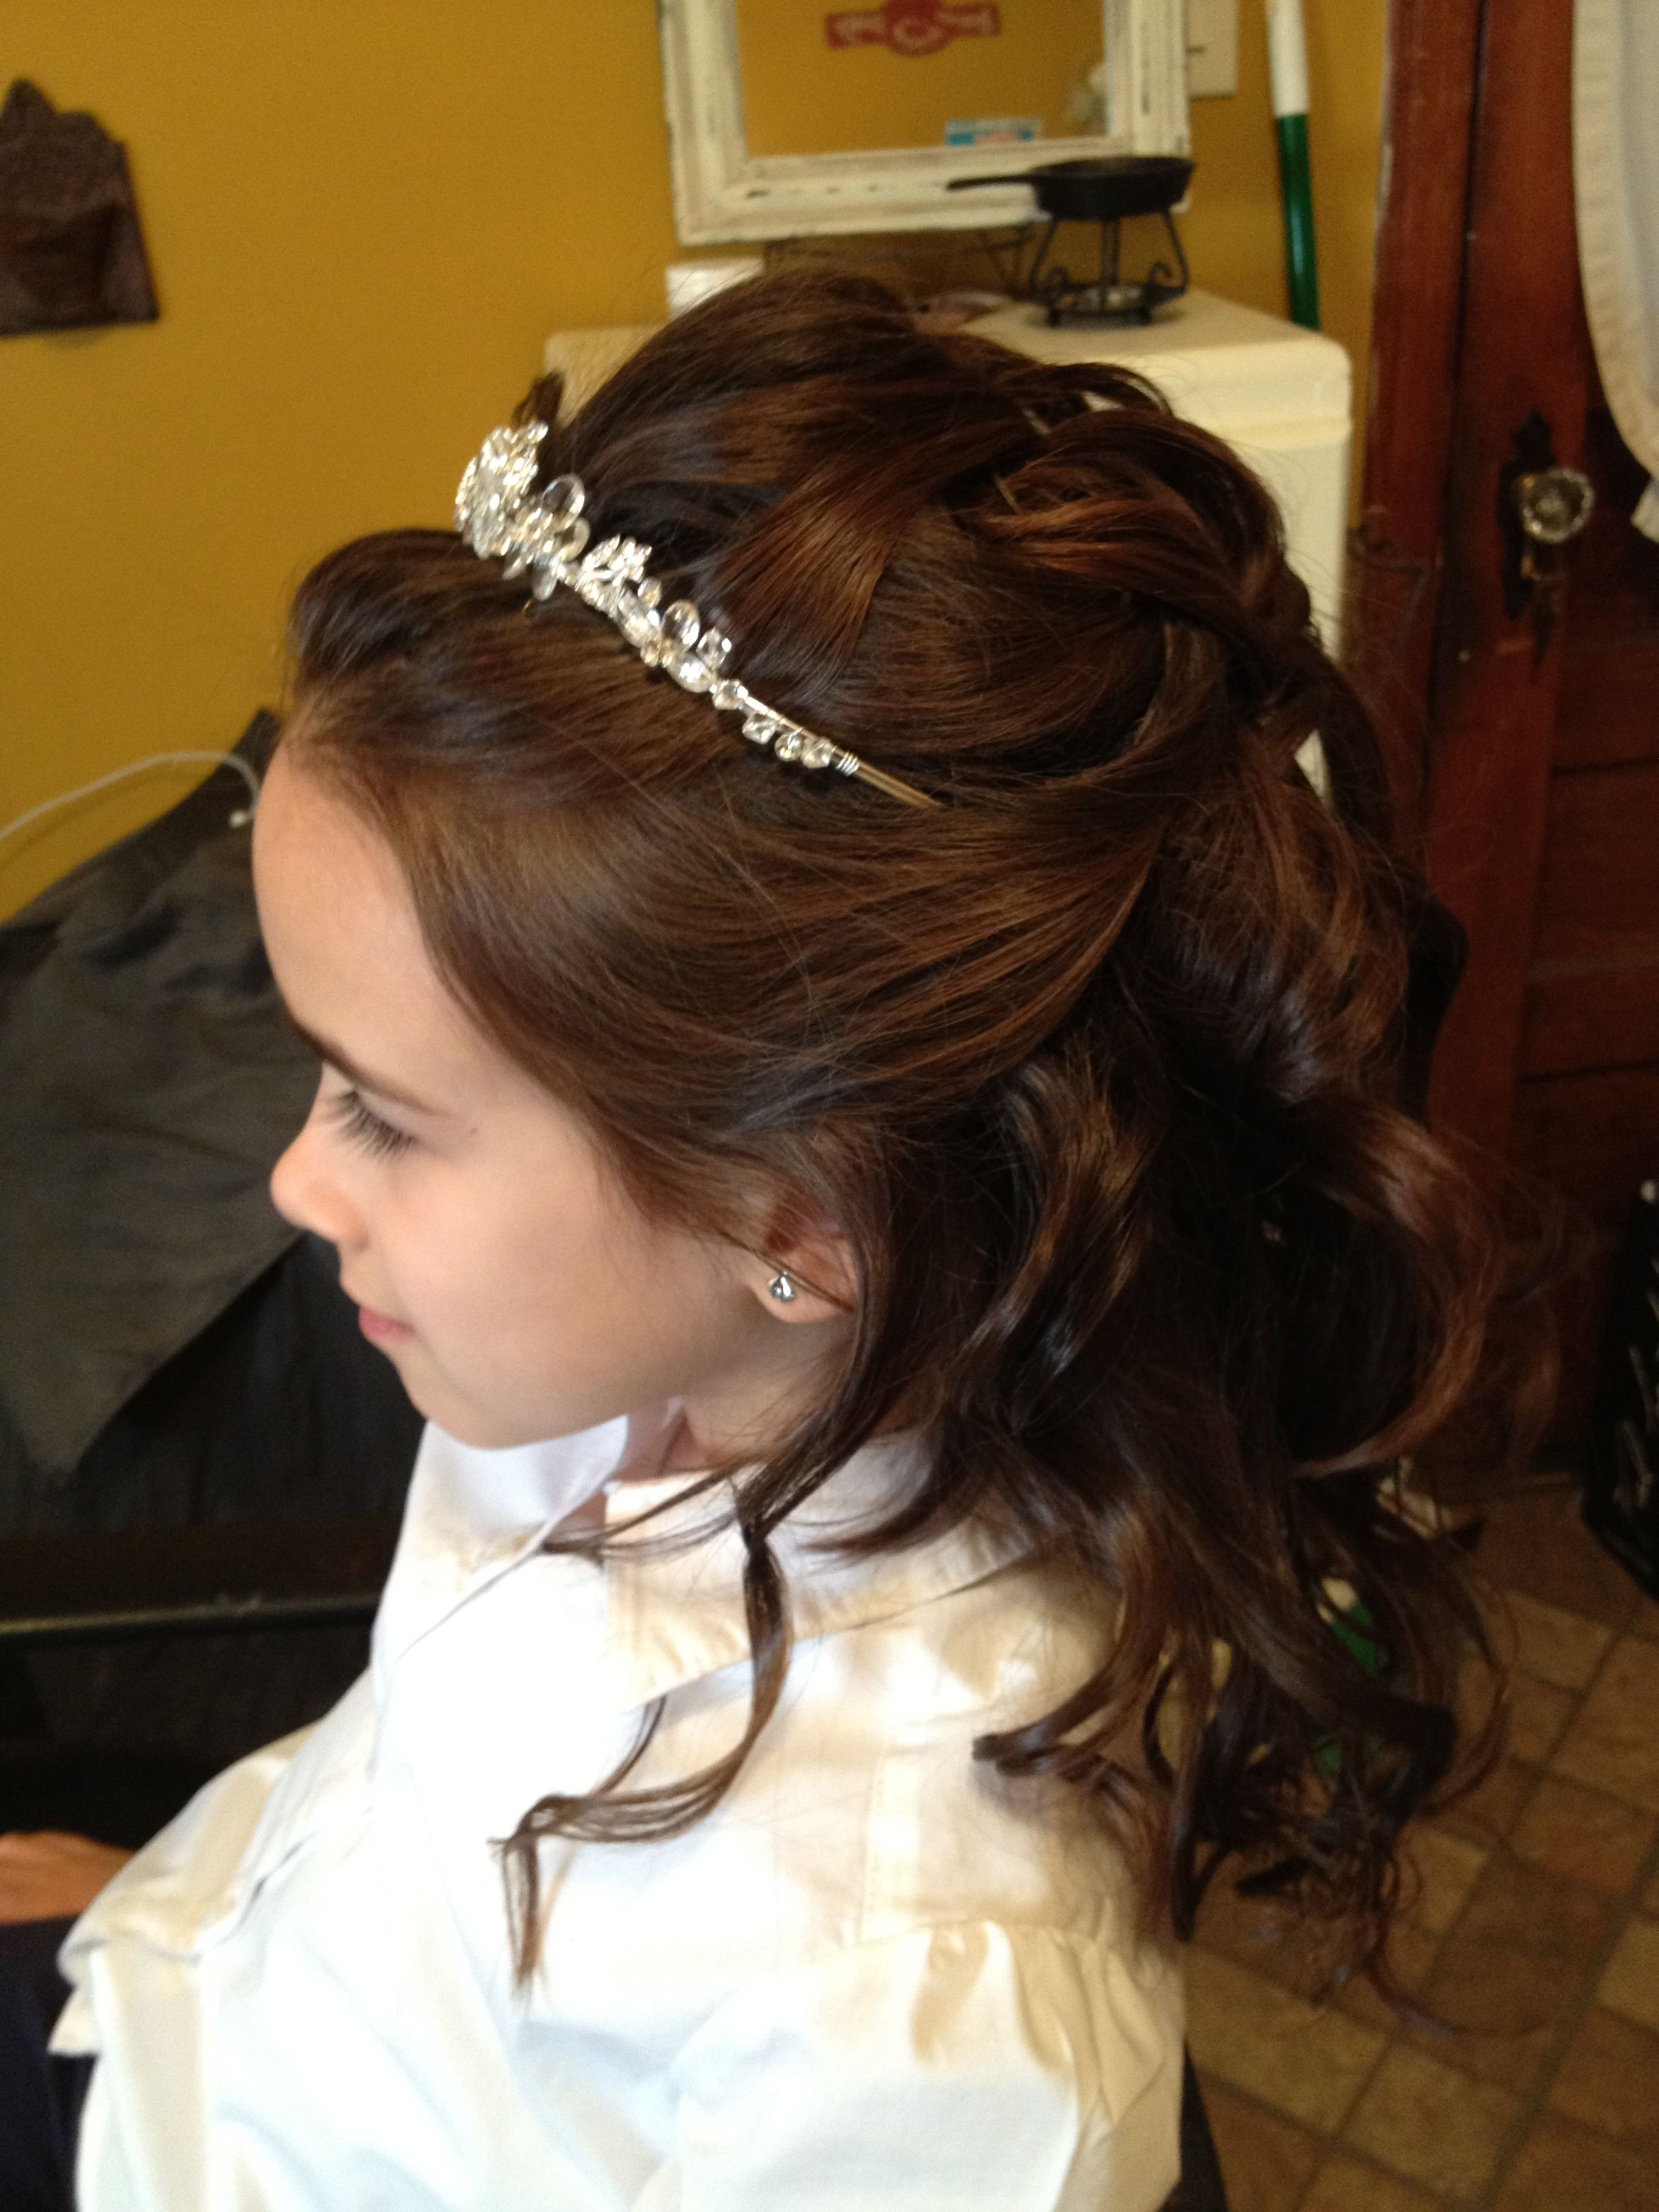 communion hair | studio 16 hair design | pinterest | communion and